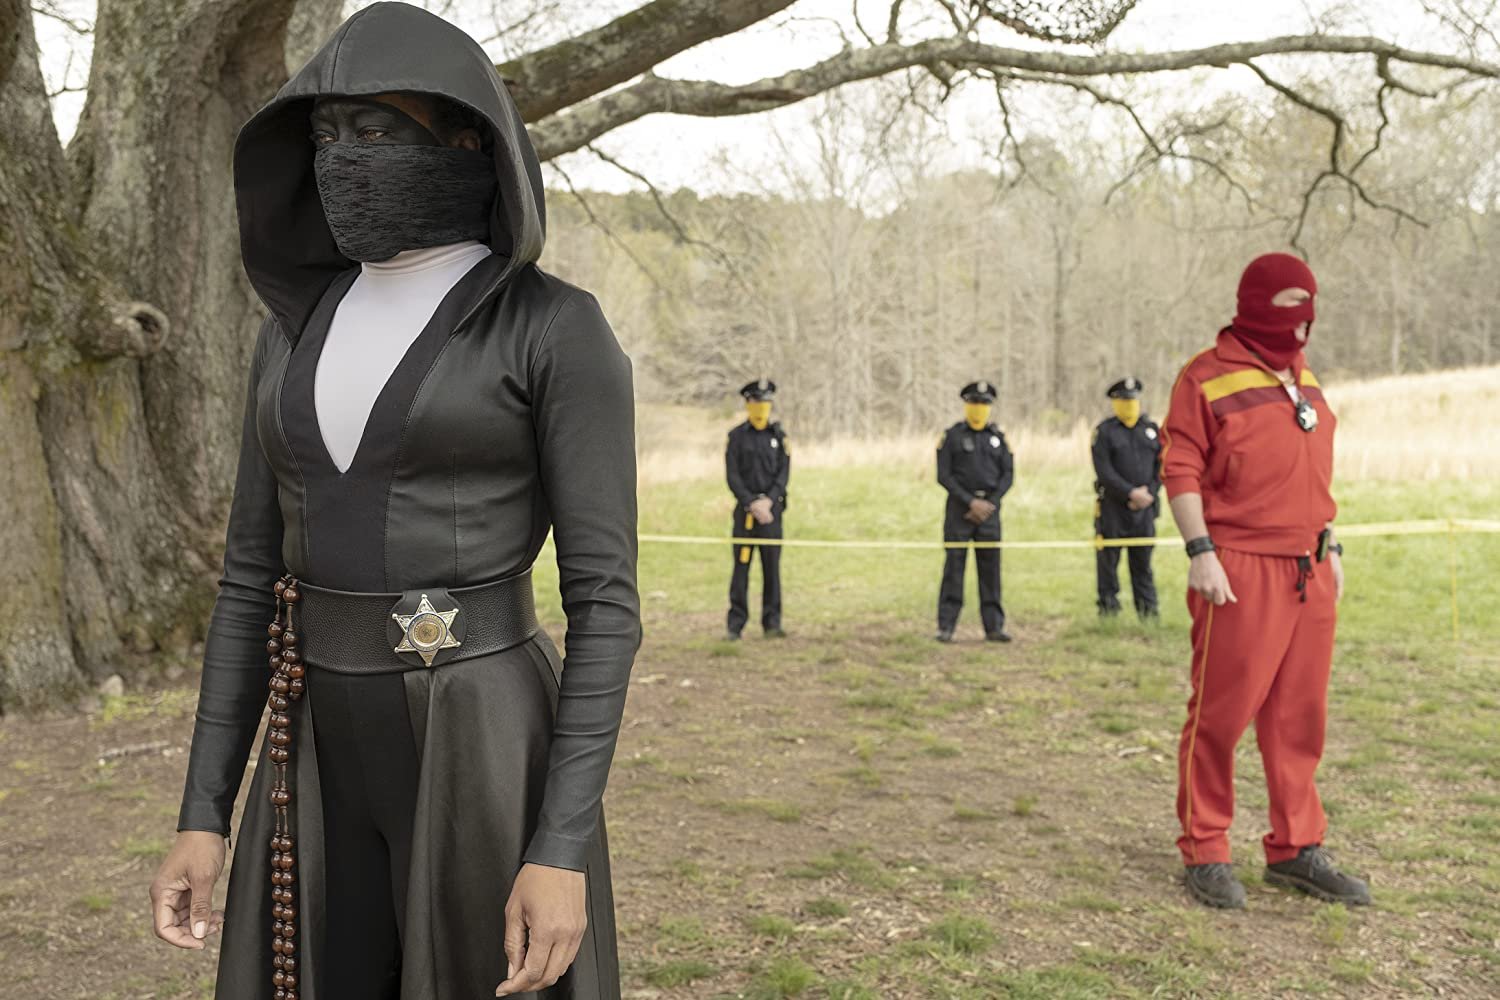 [News] HBO Offers WATCHMEN Series for Free